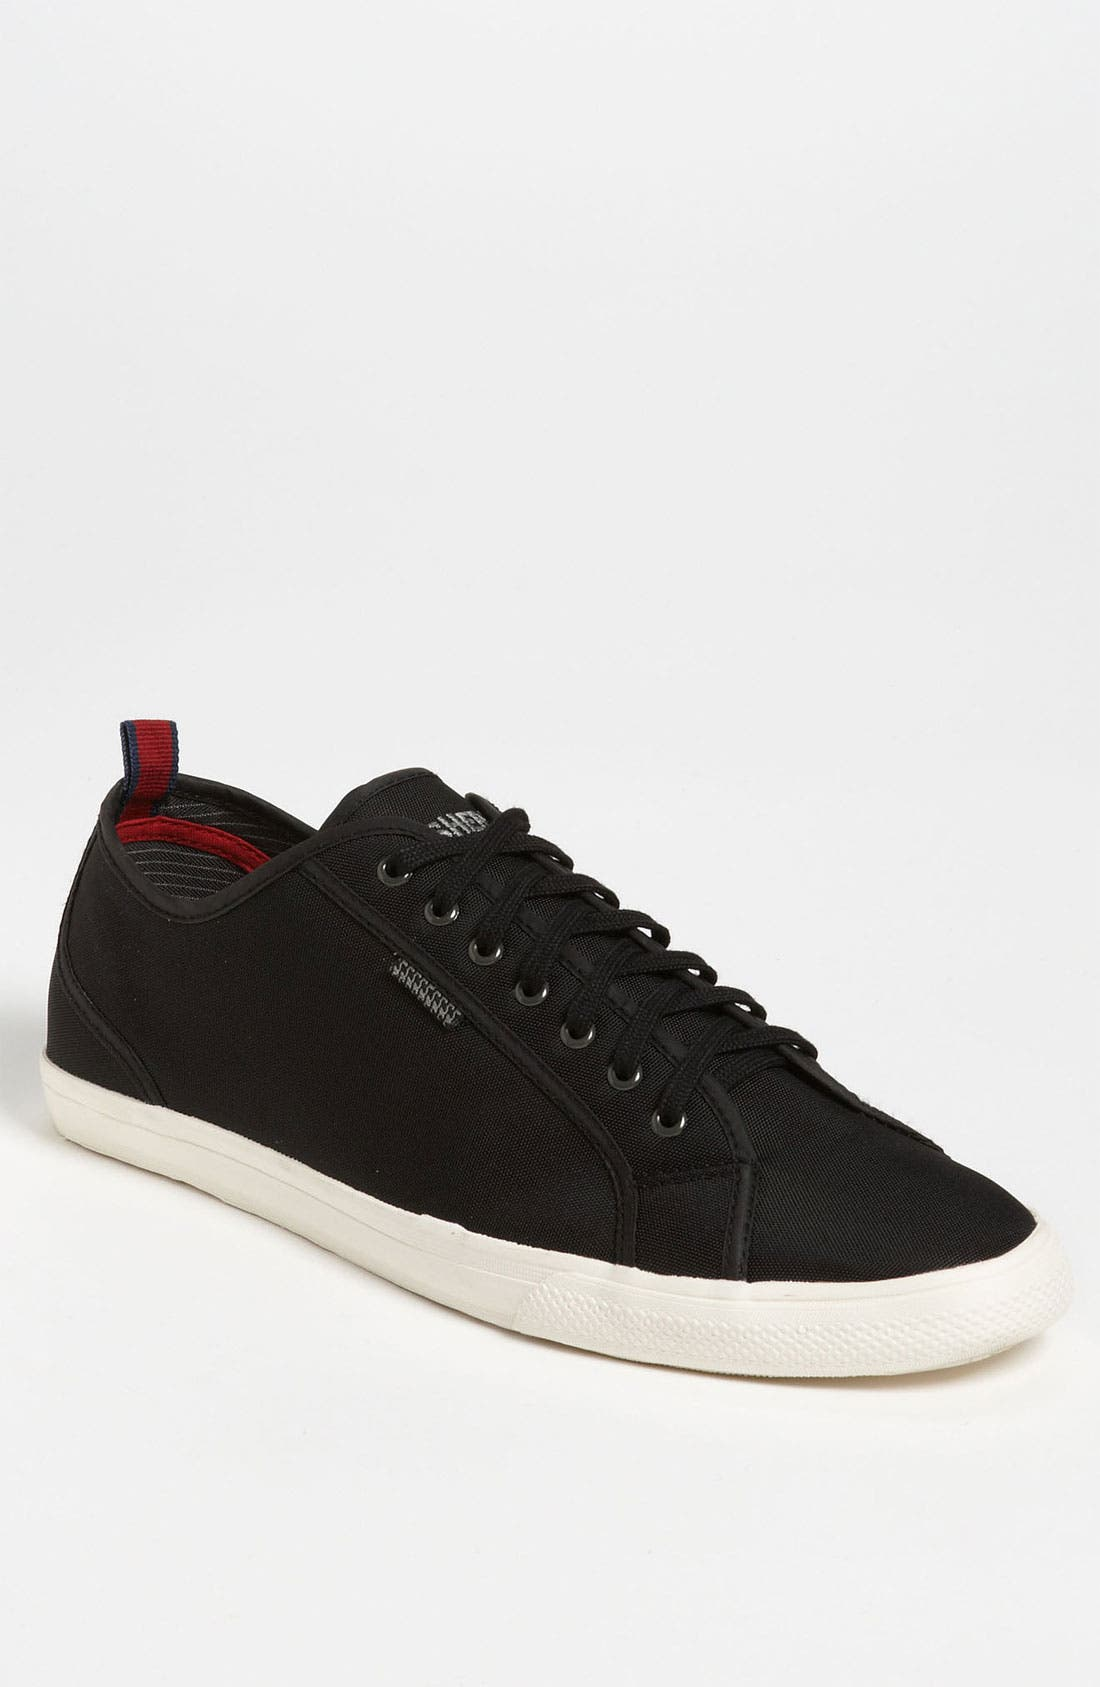 Alternate Image 1 Selected - Ben Sherman 'Breckon' Sneaker